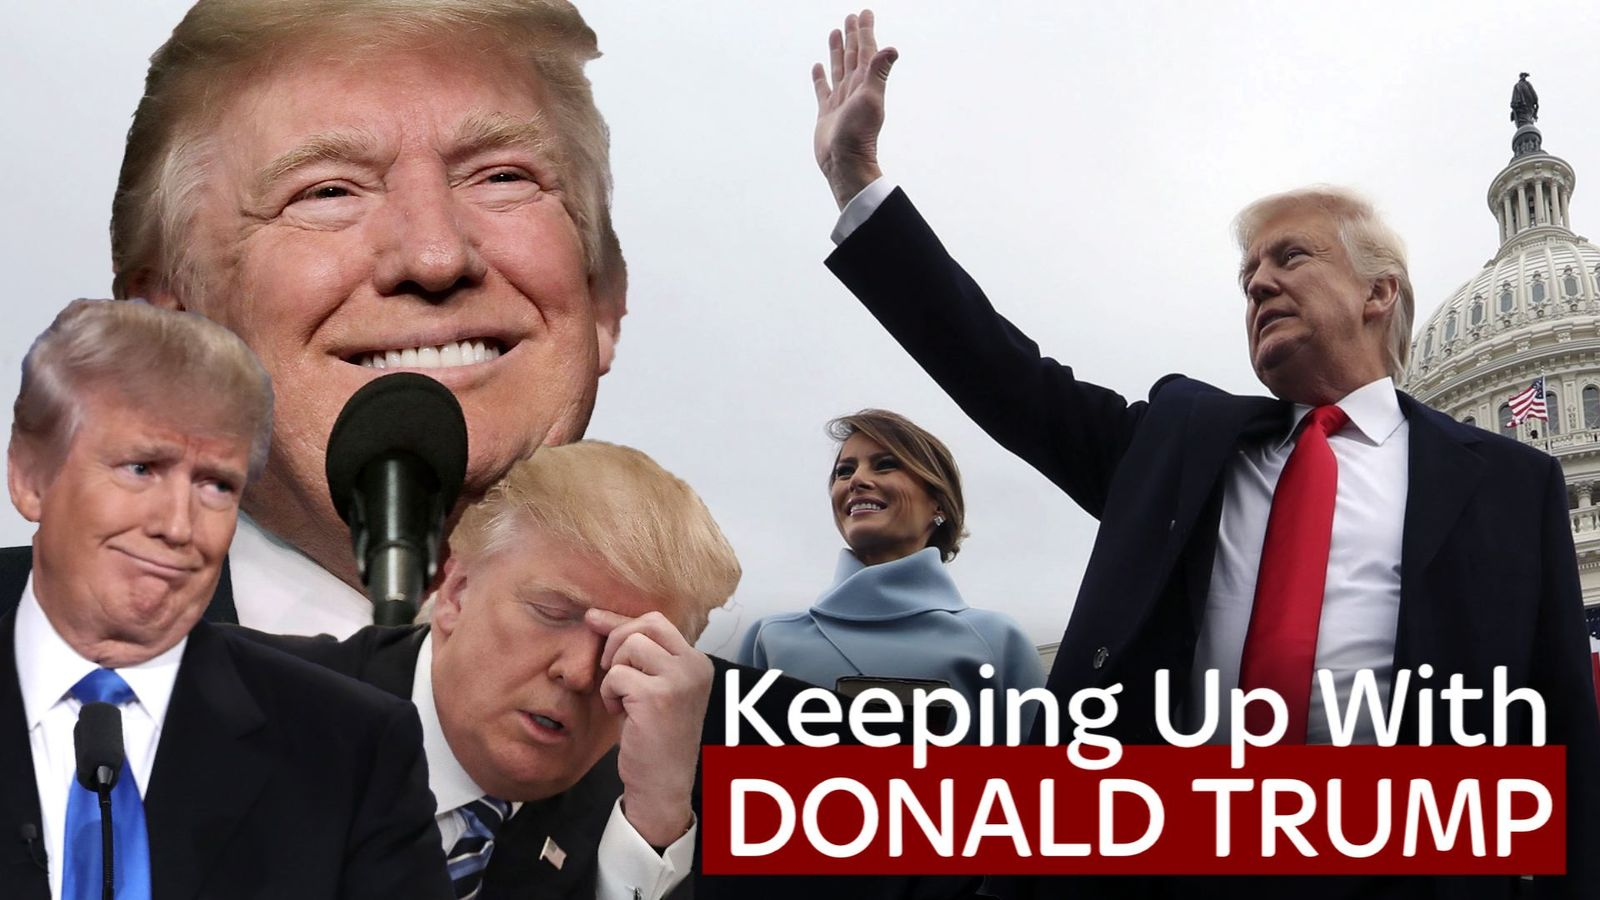 Donald Trump is the 45th President of the United States